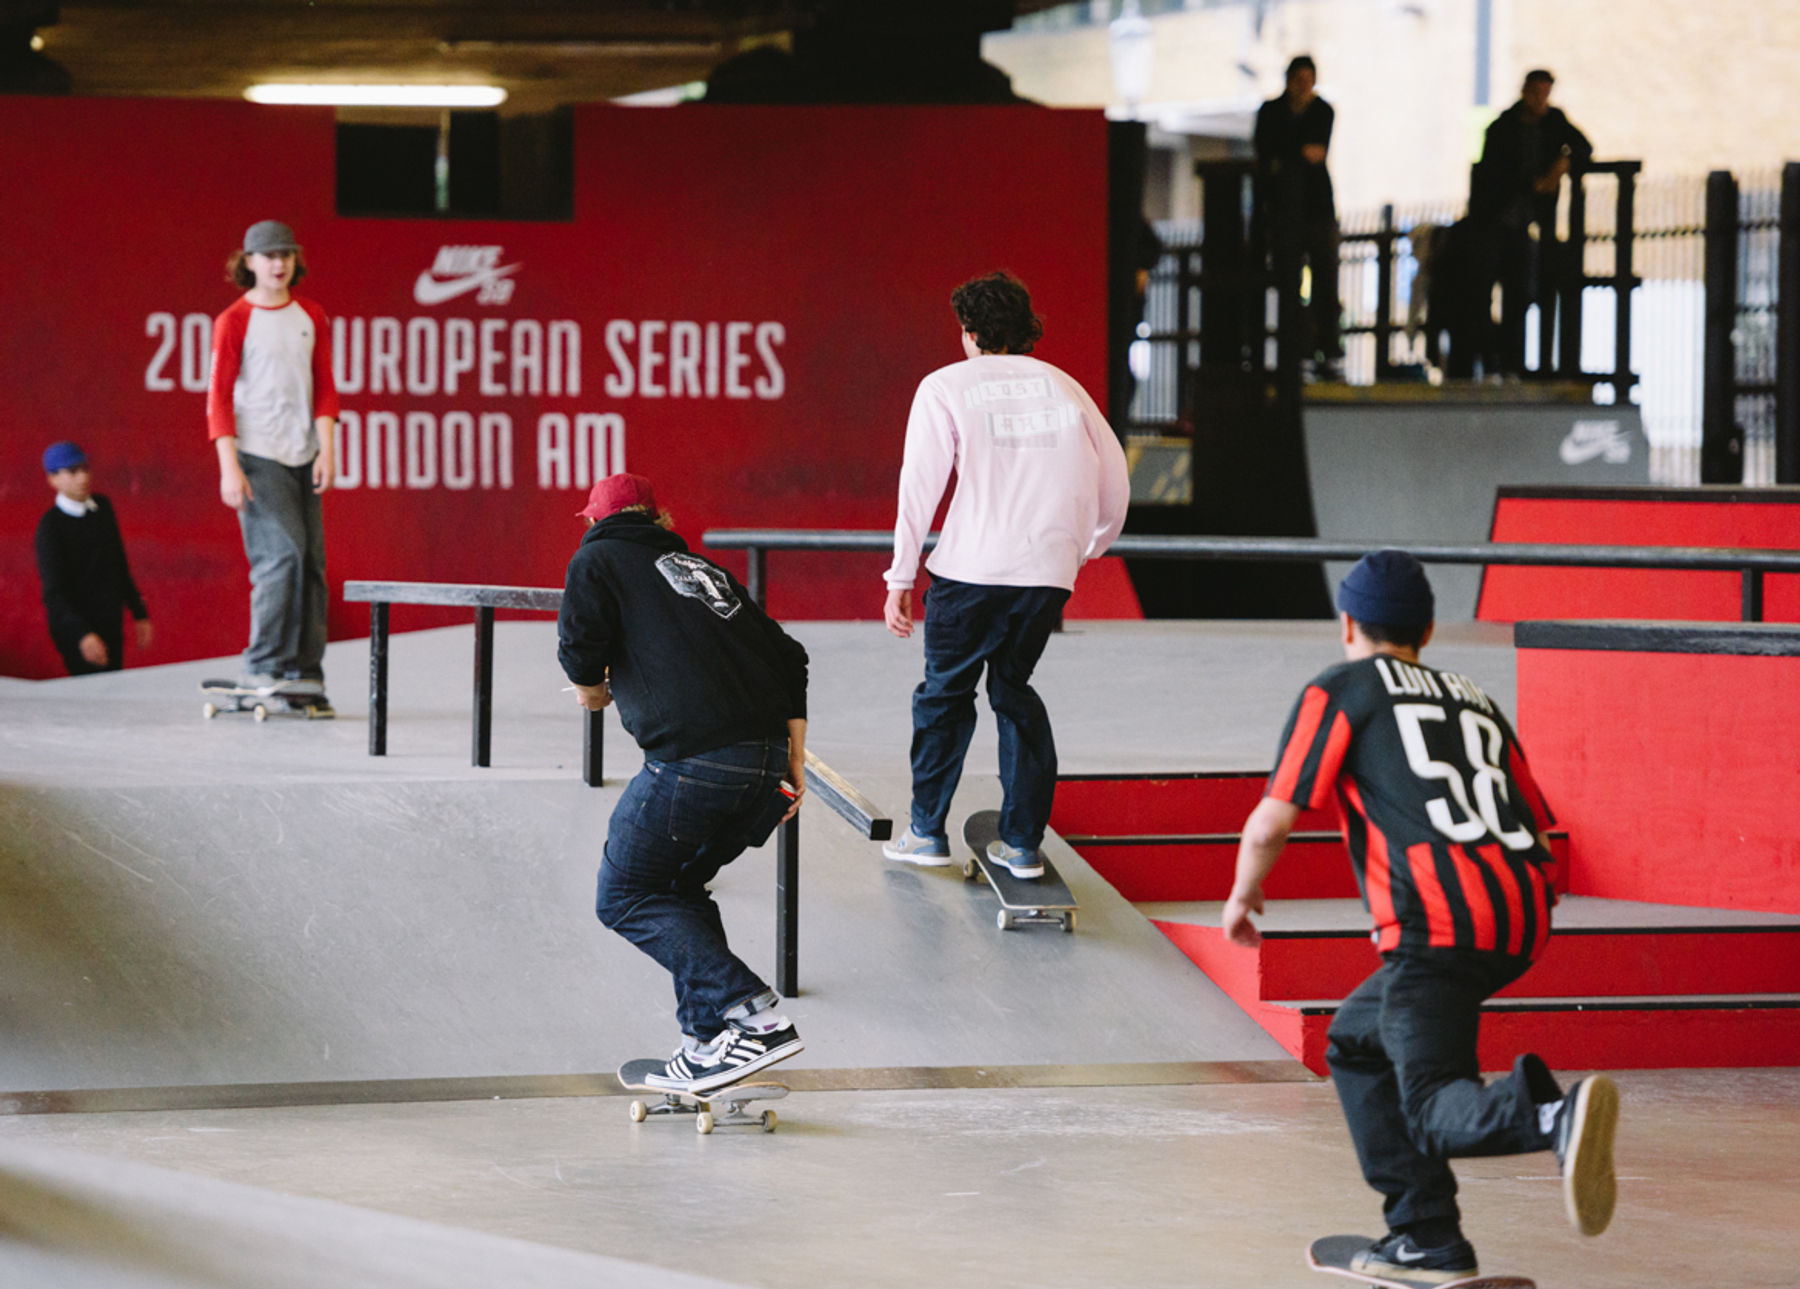 _IHC5500e-Will-Harmon-Tom-Knox-Kyron-Davis-Nike-SB-London-AM-Day-2-June-2015-Photographer-Maksim-Kalanep